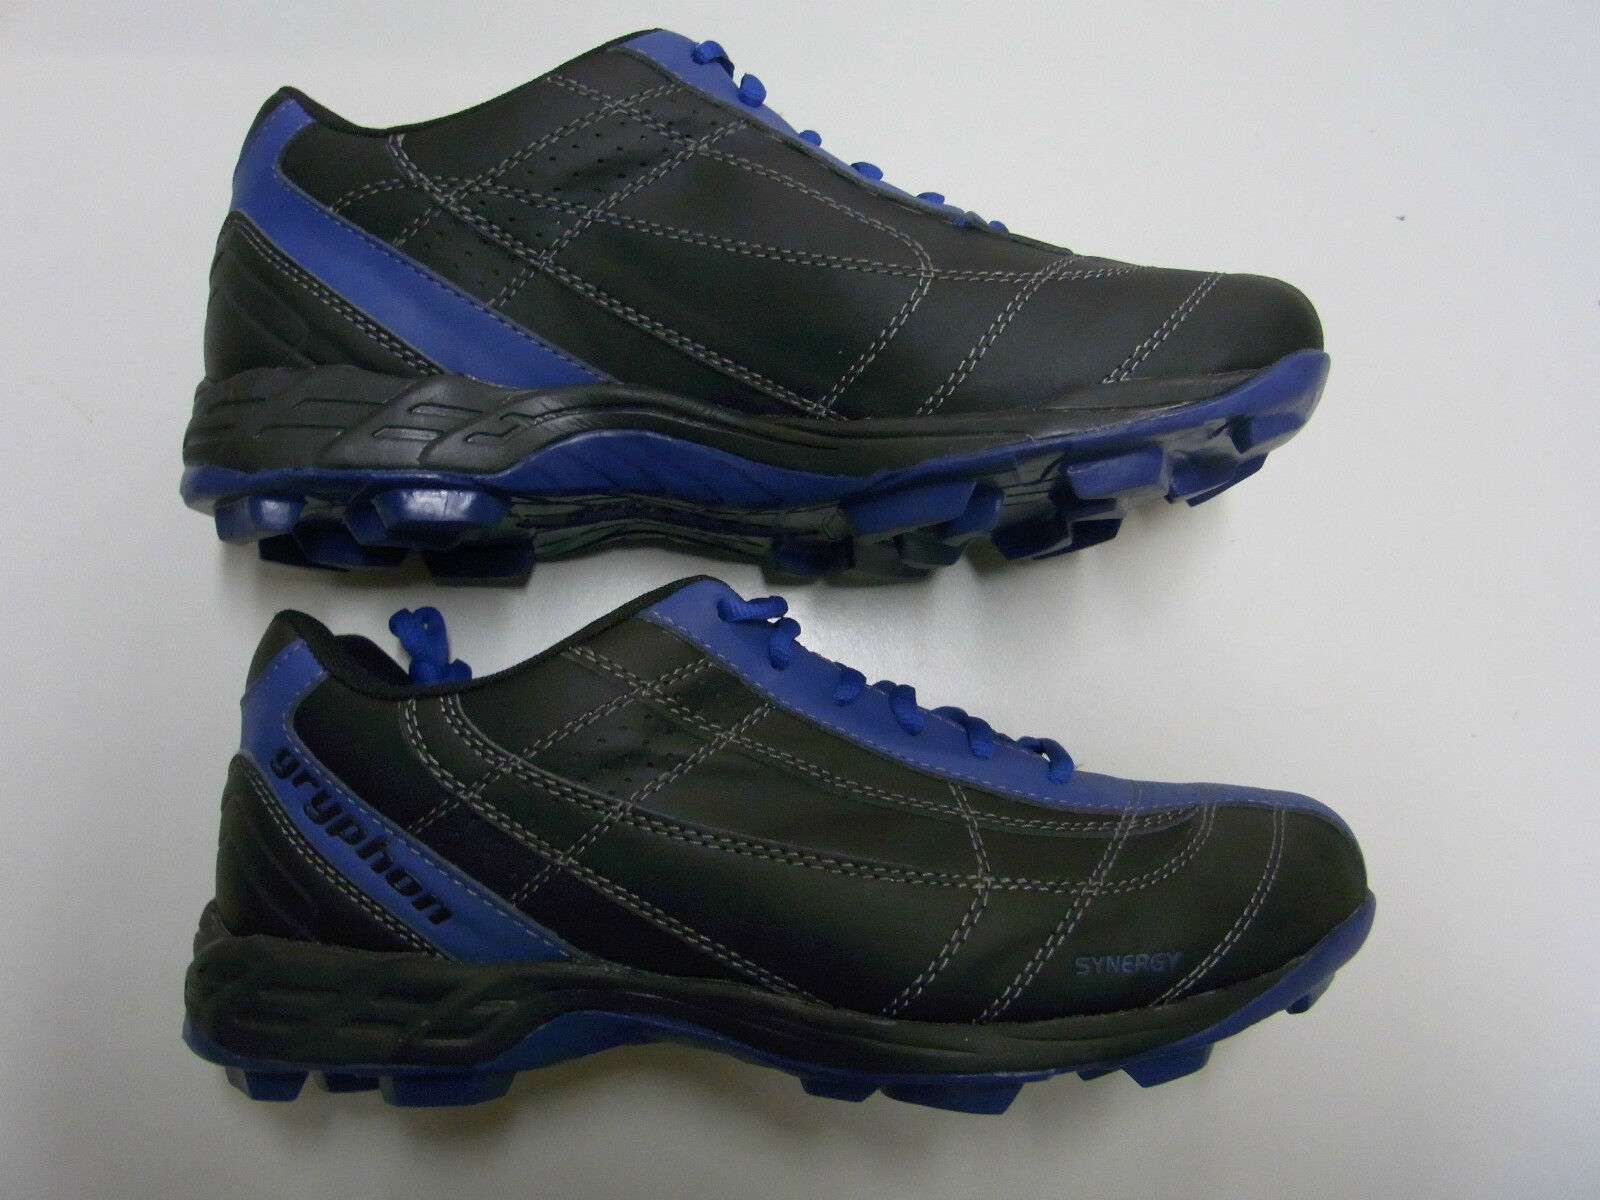 Gryphon Synergy Hockey Field Astro Turf Shoes, All Sizes